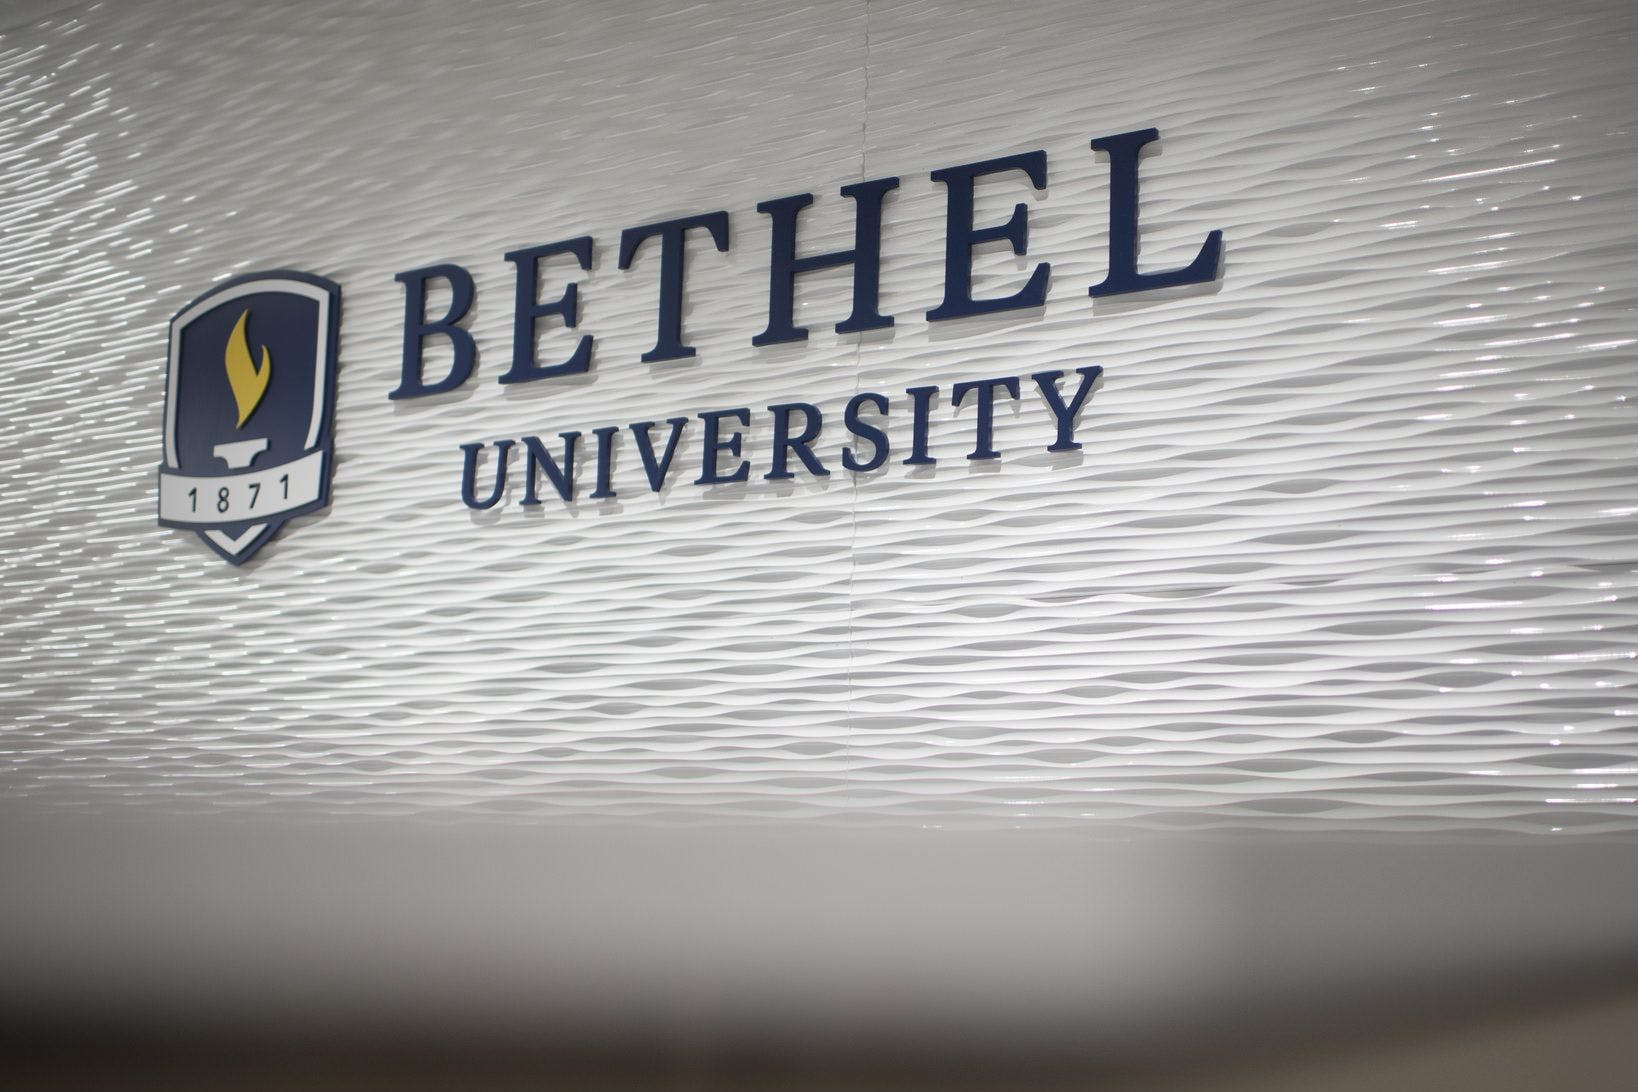 Bethel 2016 - A Year in Review | Bethel University